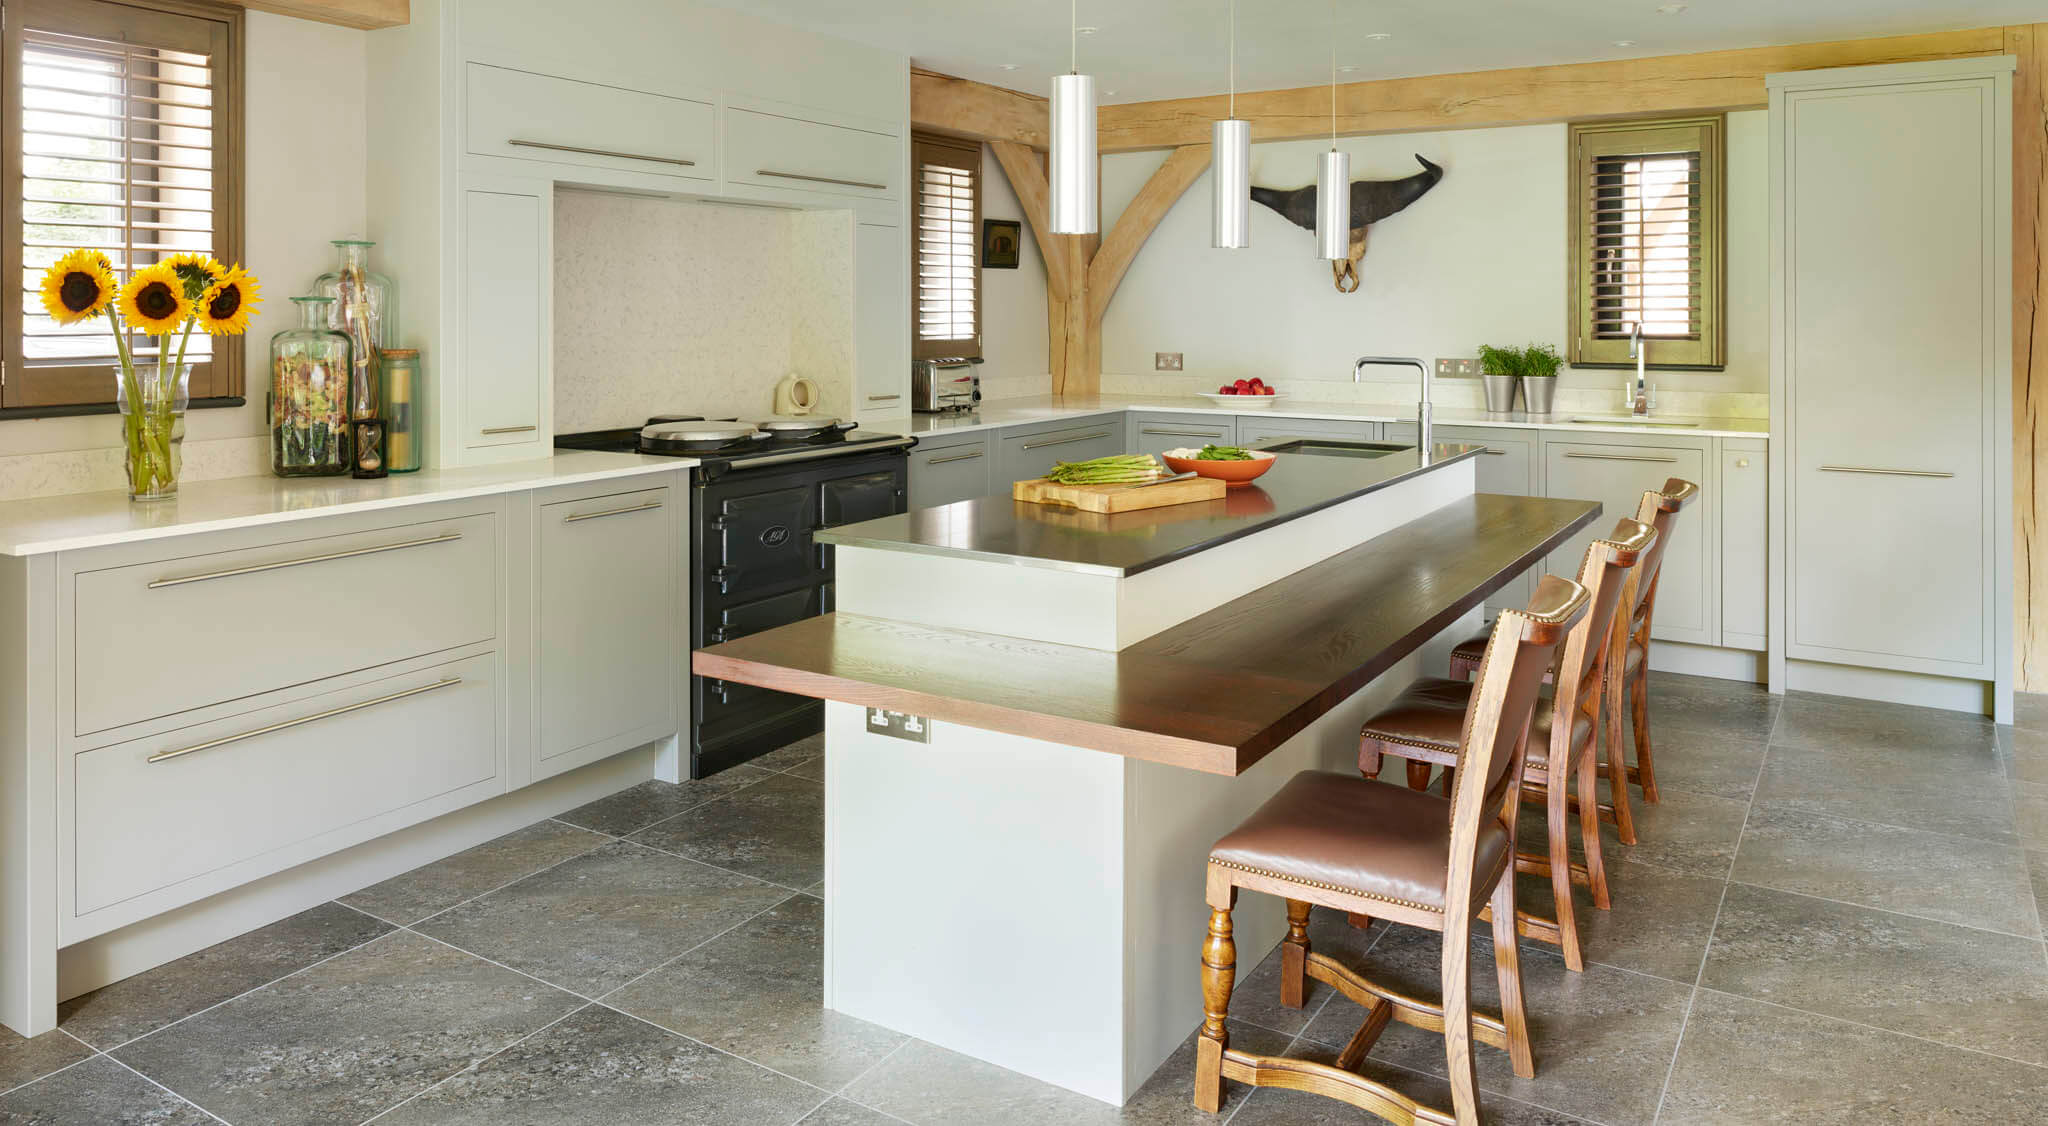 Linear Kitchen Design With Integrated Island Seating